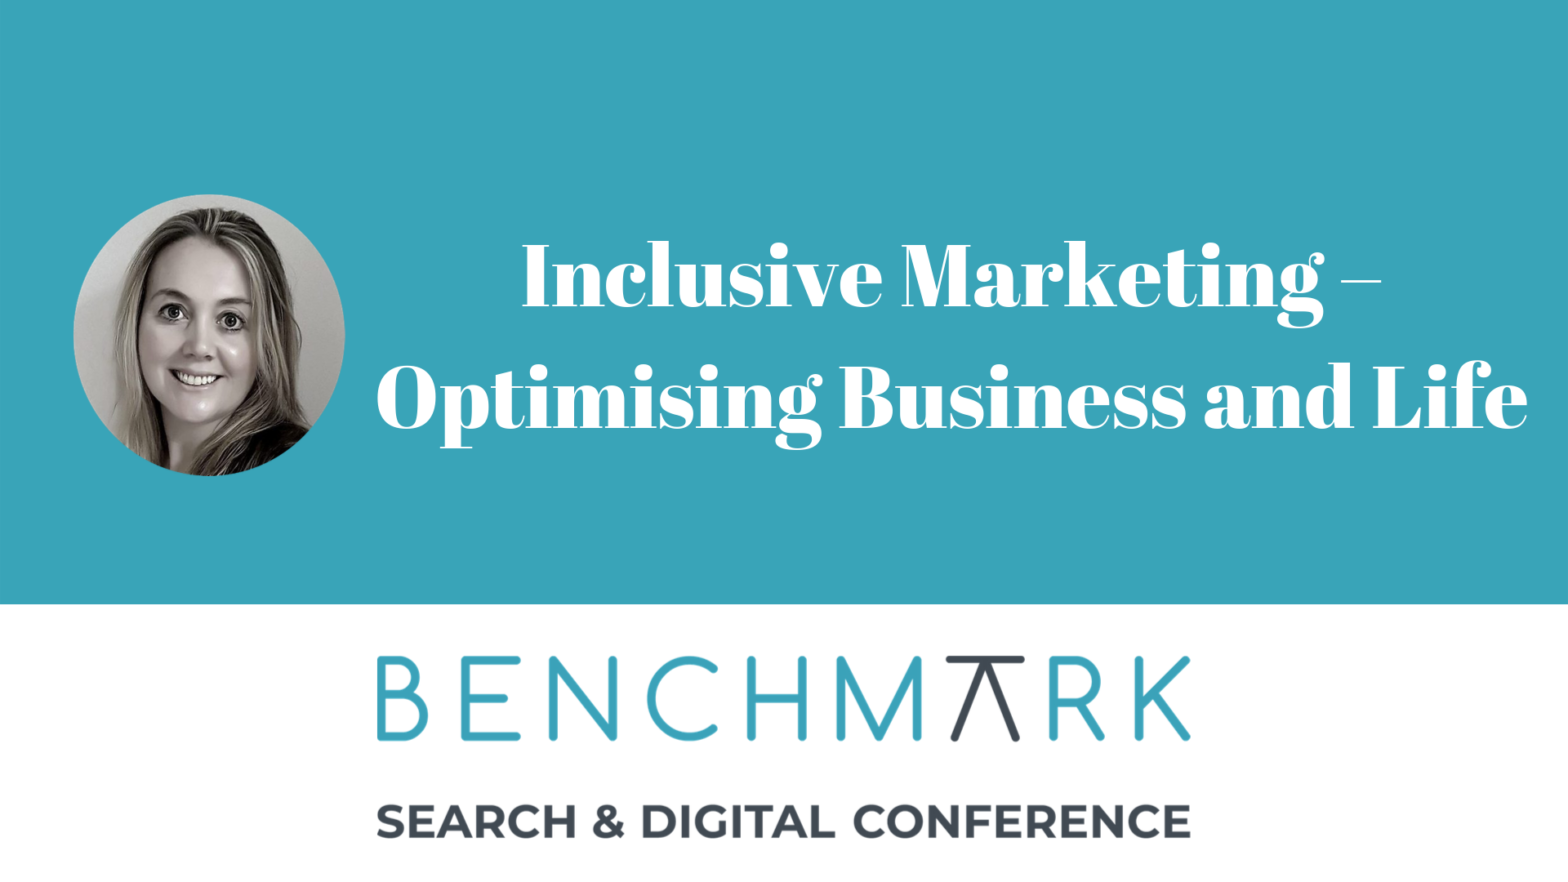 Inclusive Marketing – Optimising Business and Life